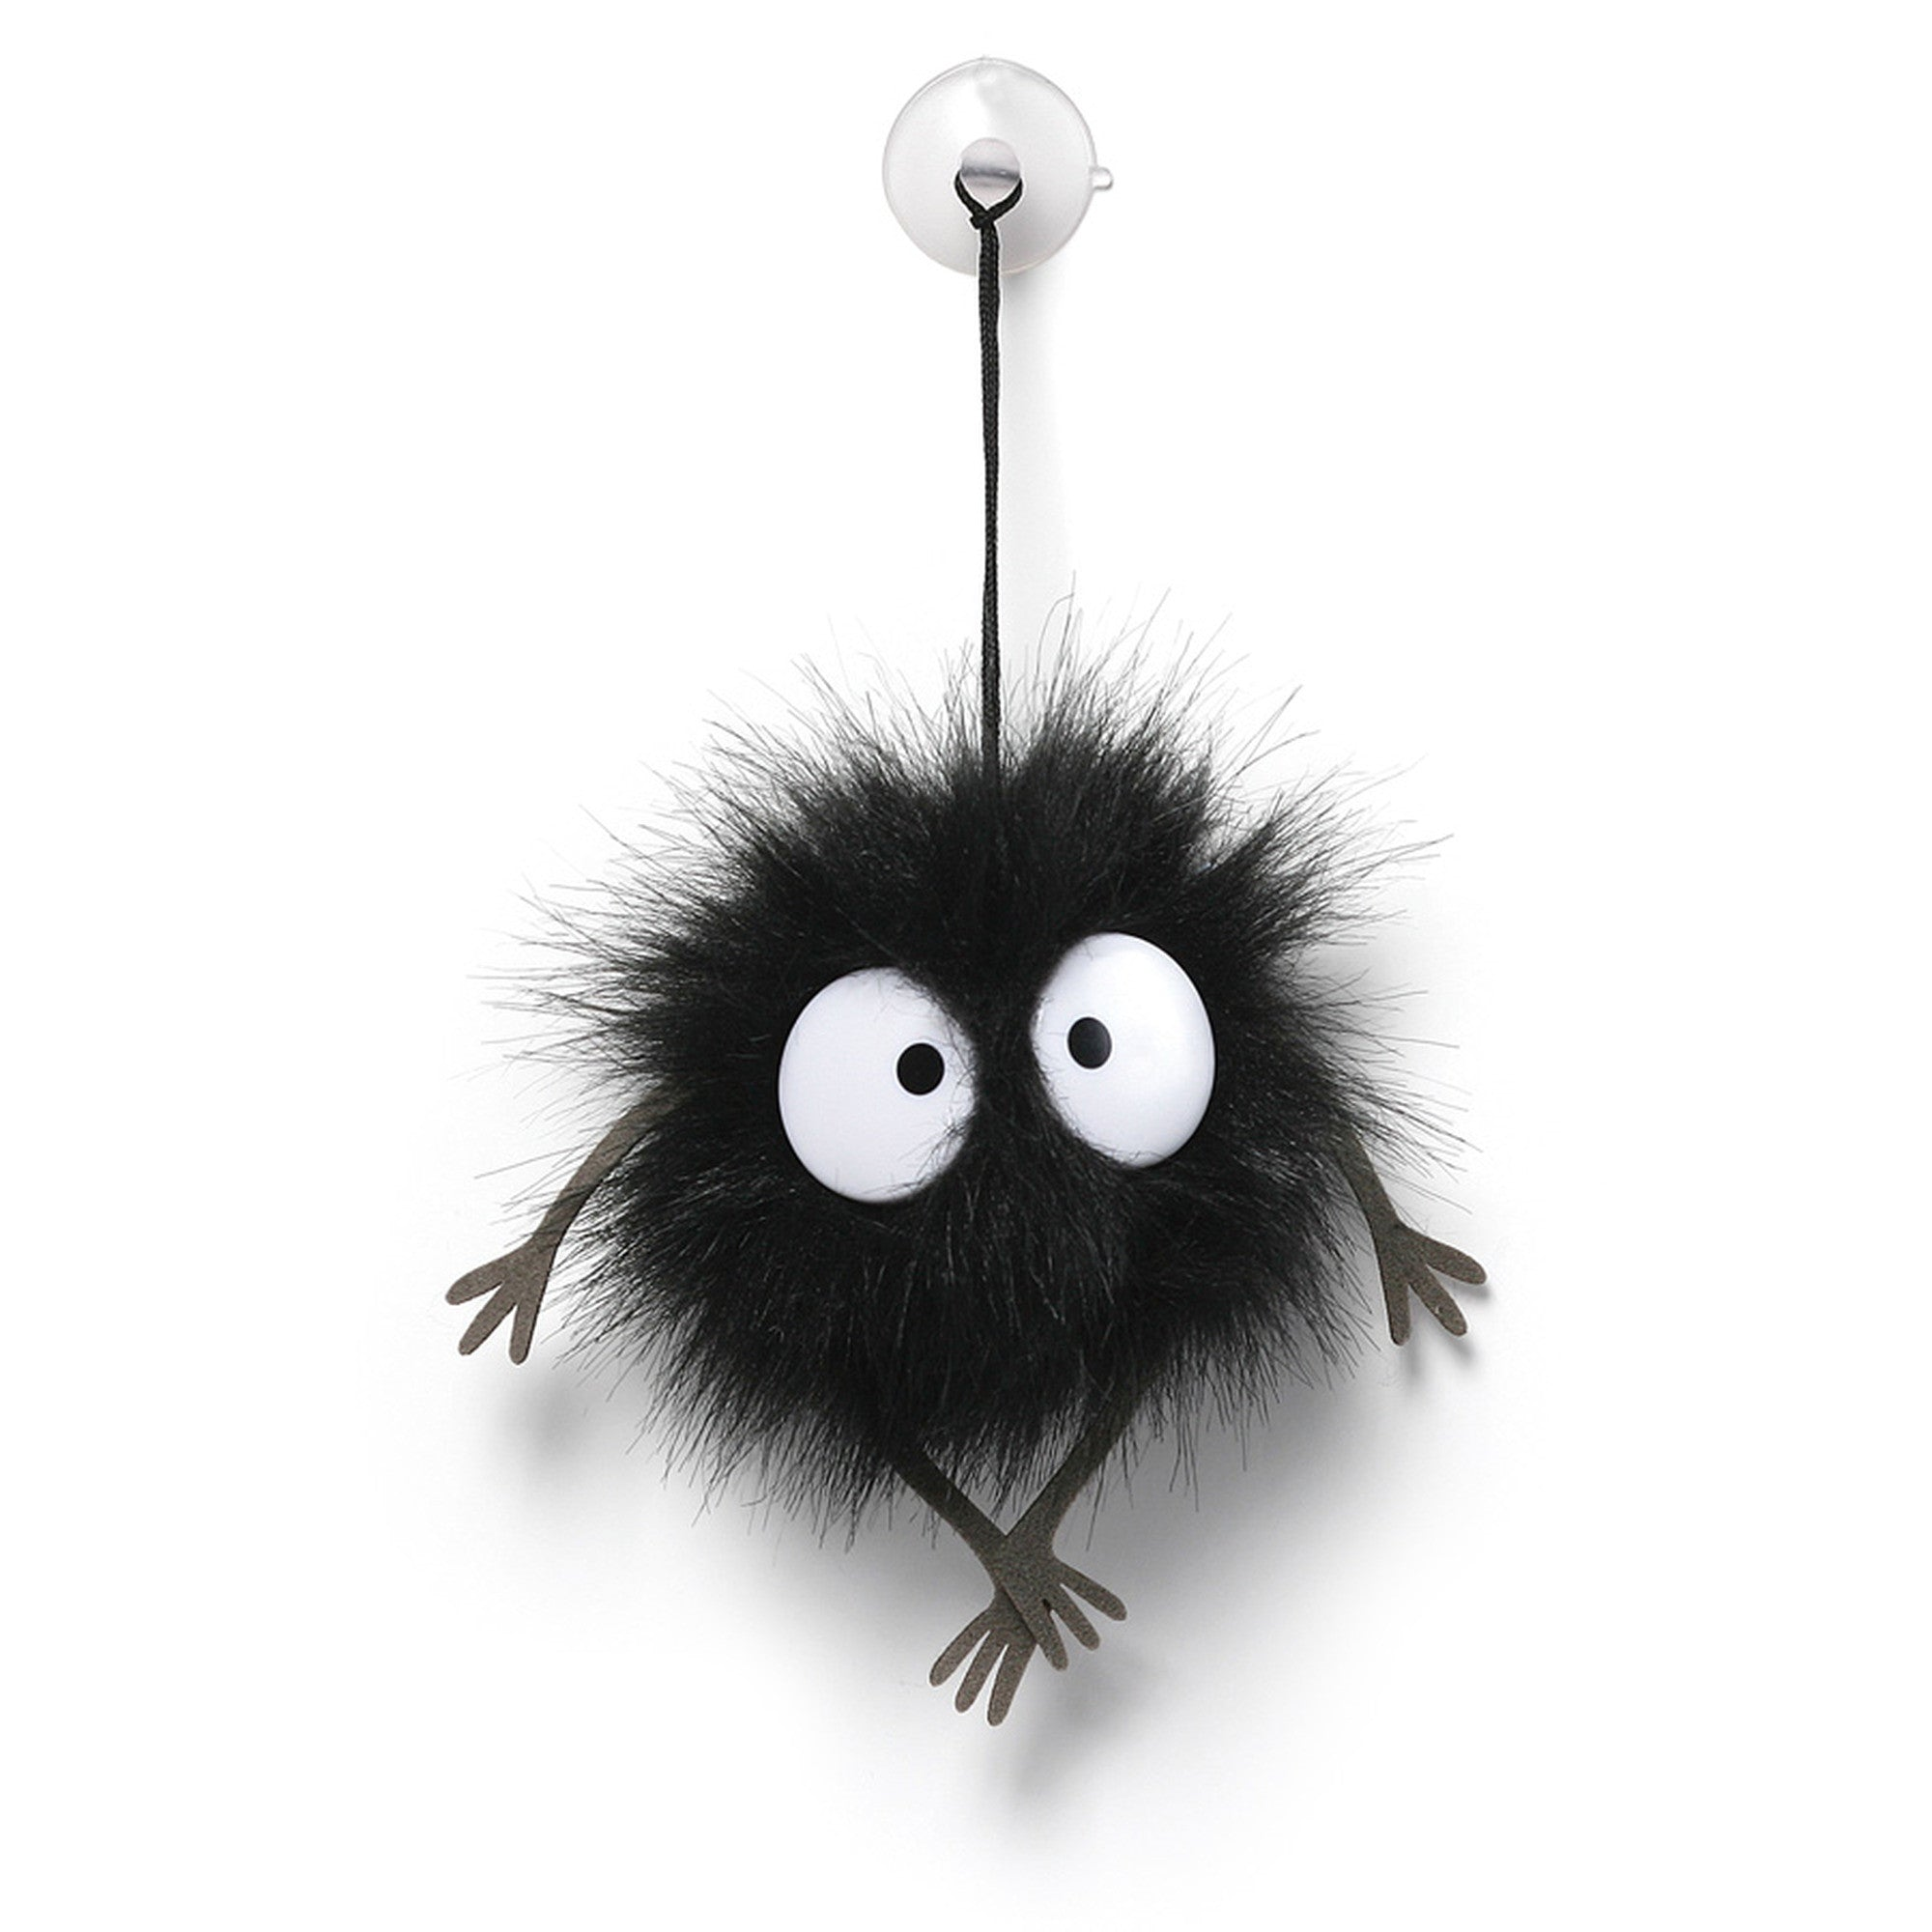 Spirited Away Soot Sprite Window Cling The Animal Kingdom